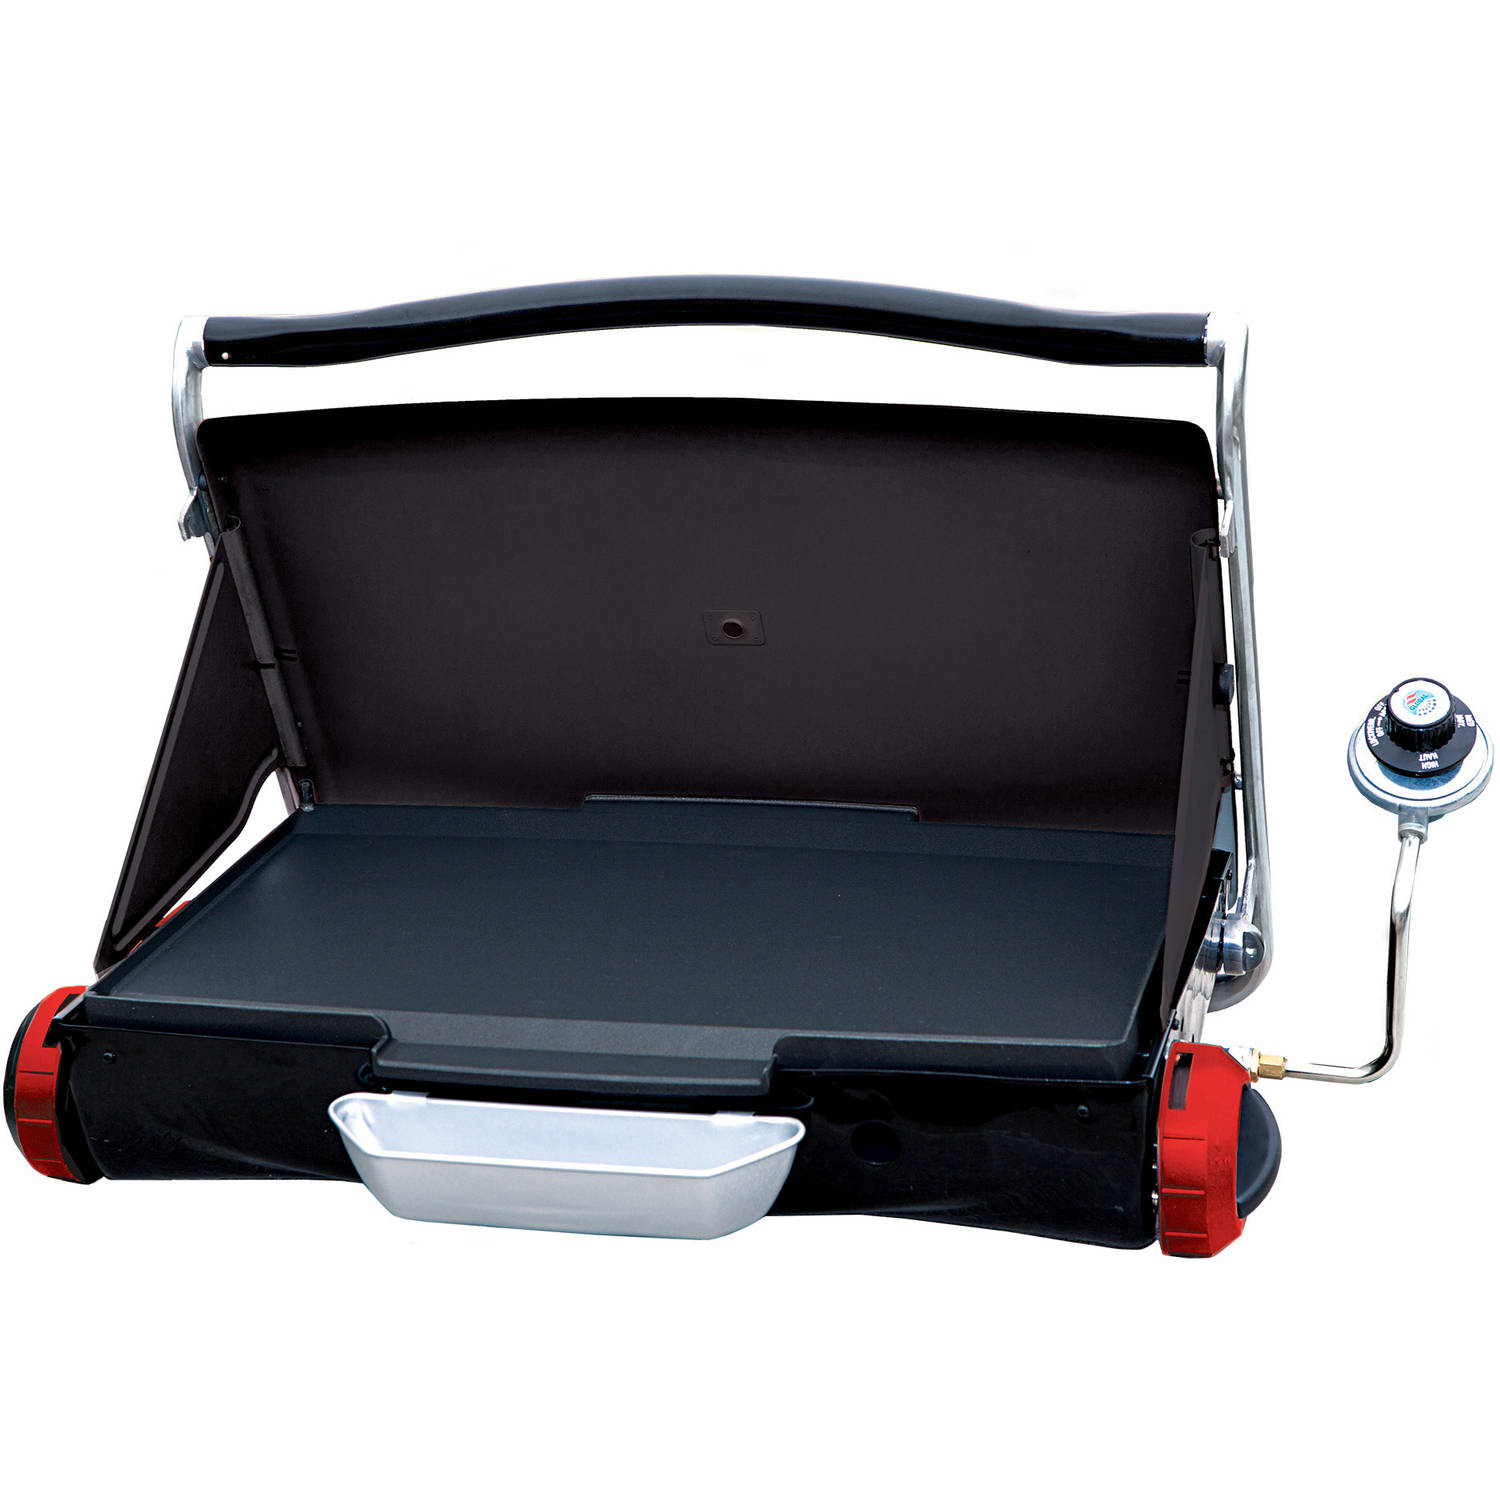 George Foreman Camp and Tailgate Portable Propane Grill